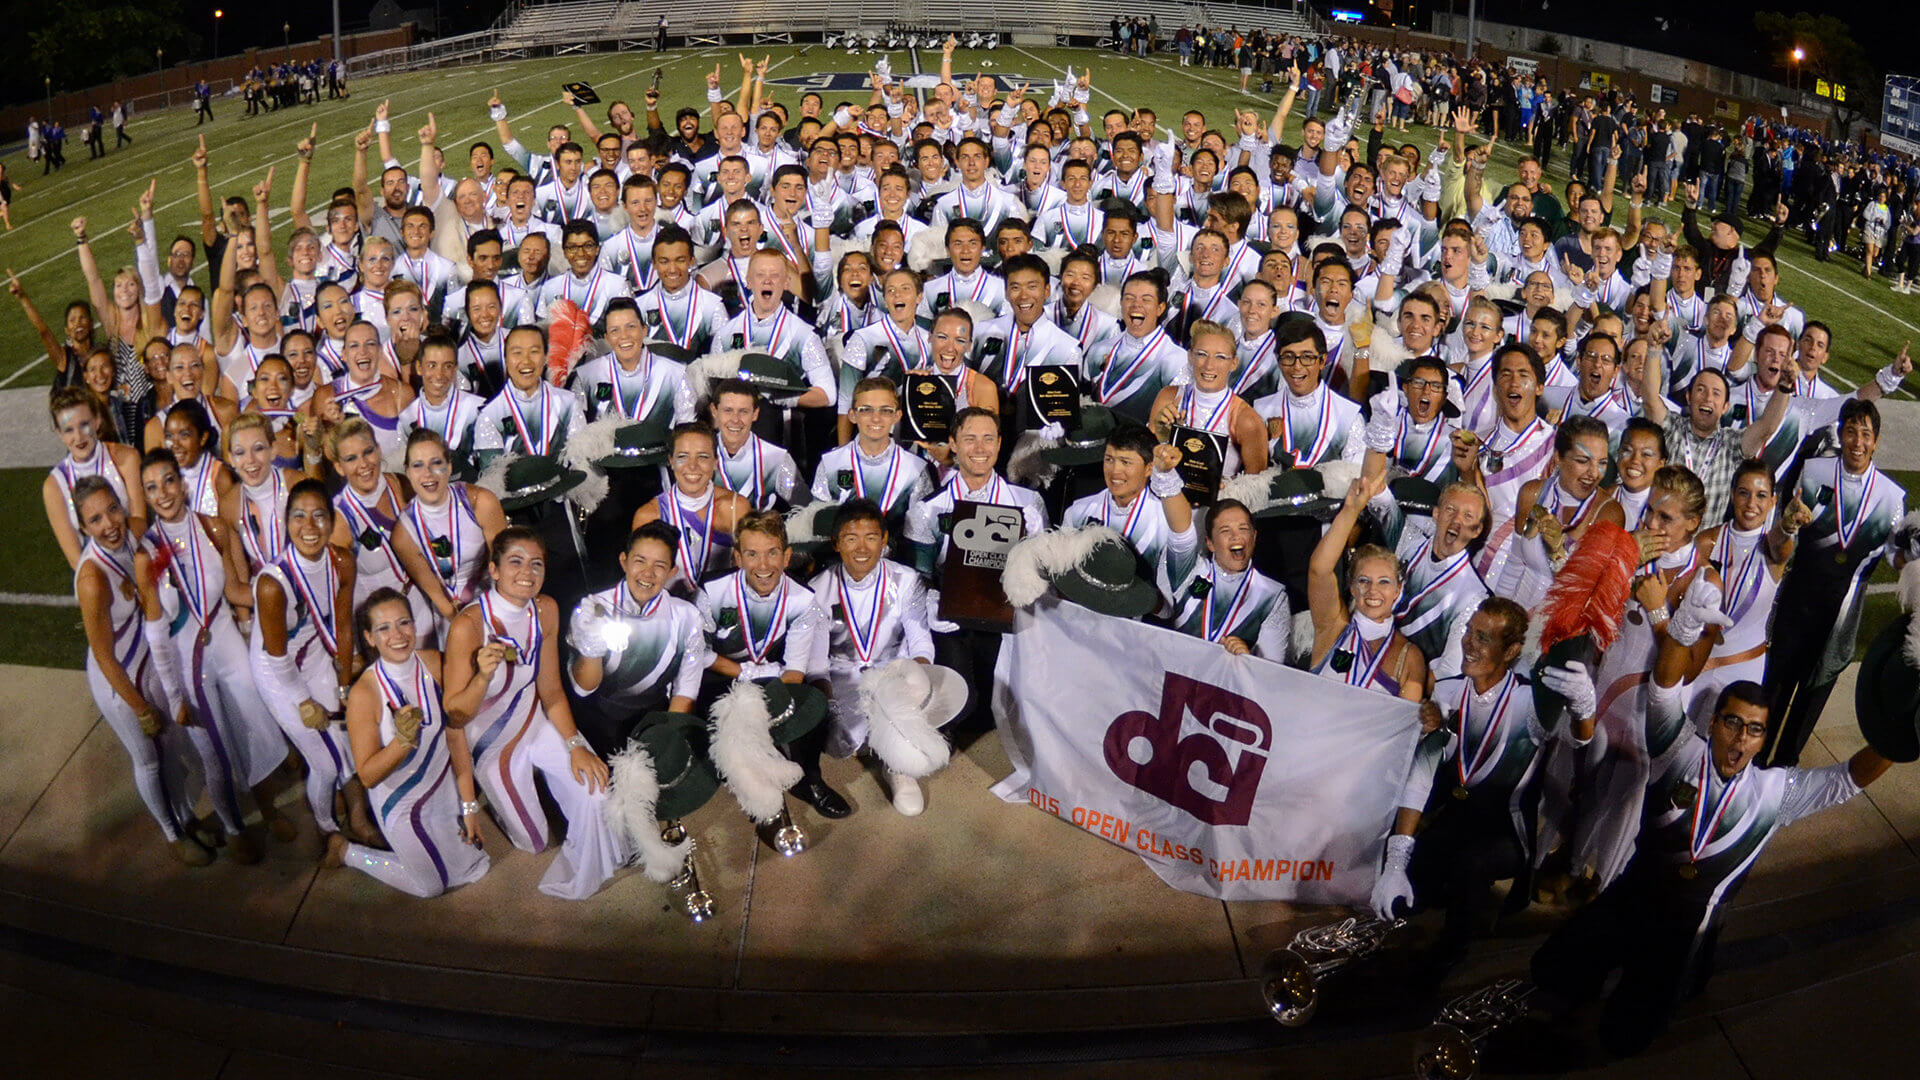 Vanguard Cadets 'On Cloud Nine' after Open Class Championship win